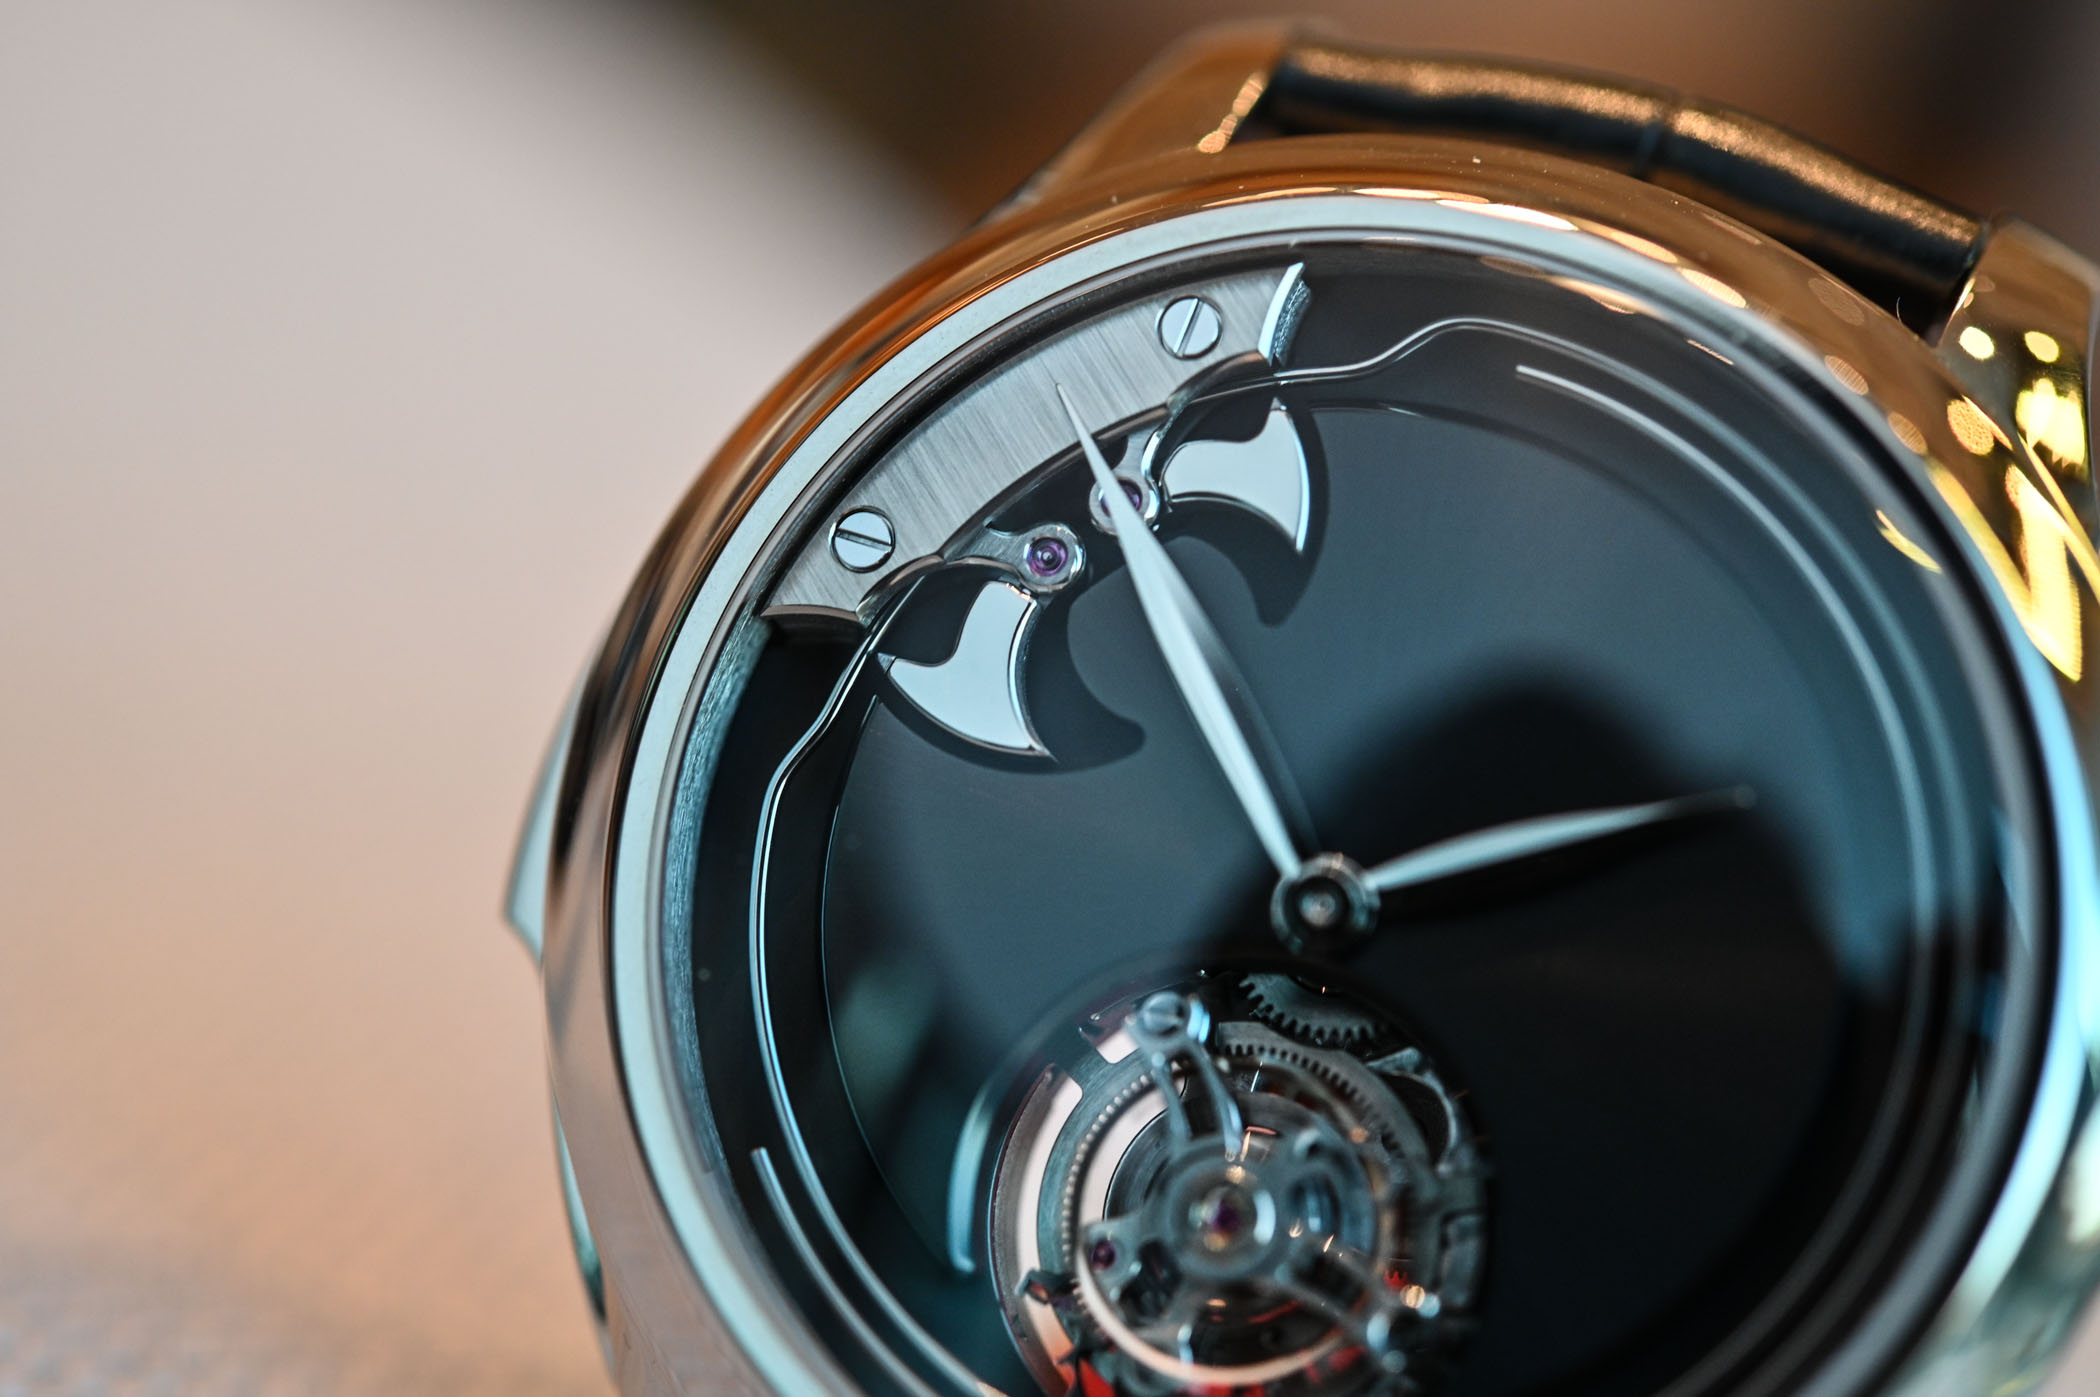 H Moser Cie Endeavour Concept Minute Repeater Tourbillon - Baselworld 2019 - 6